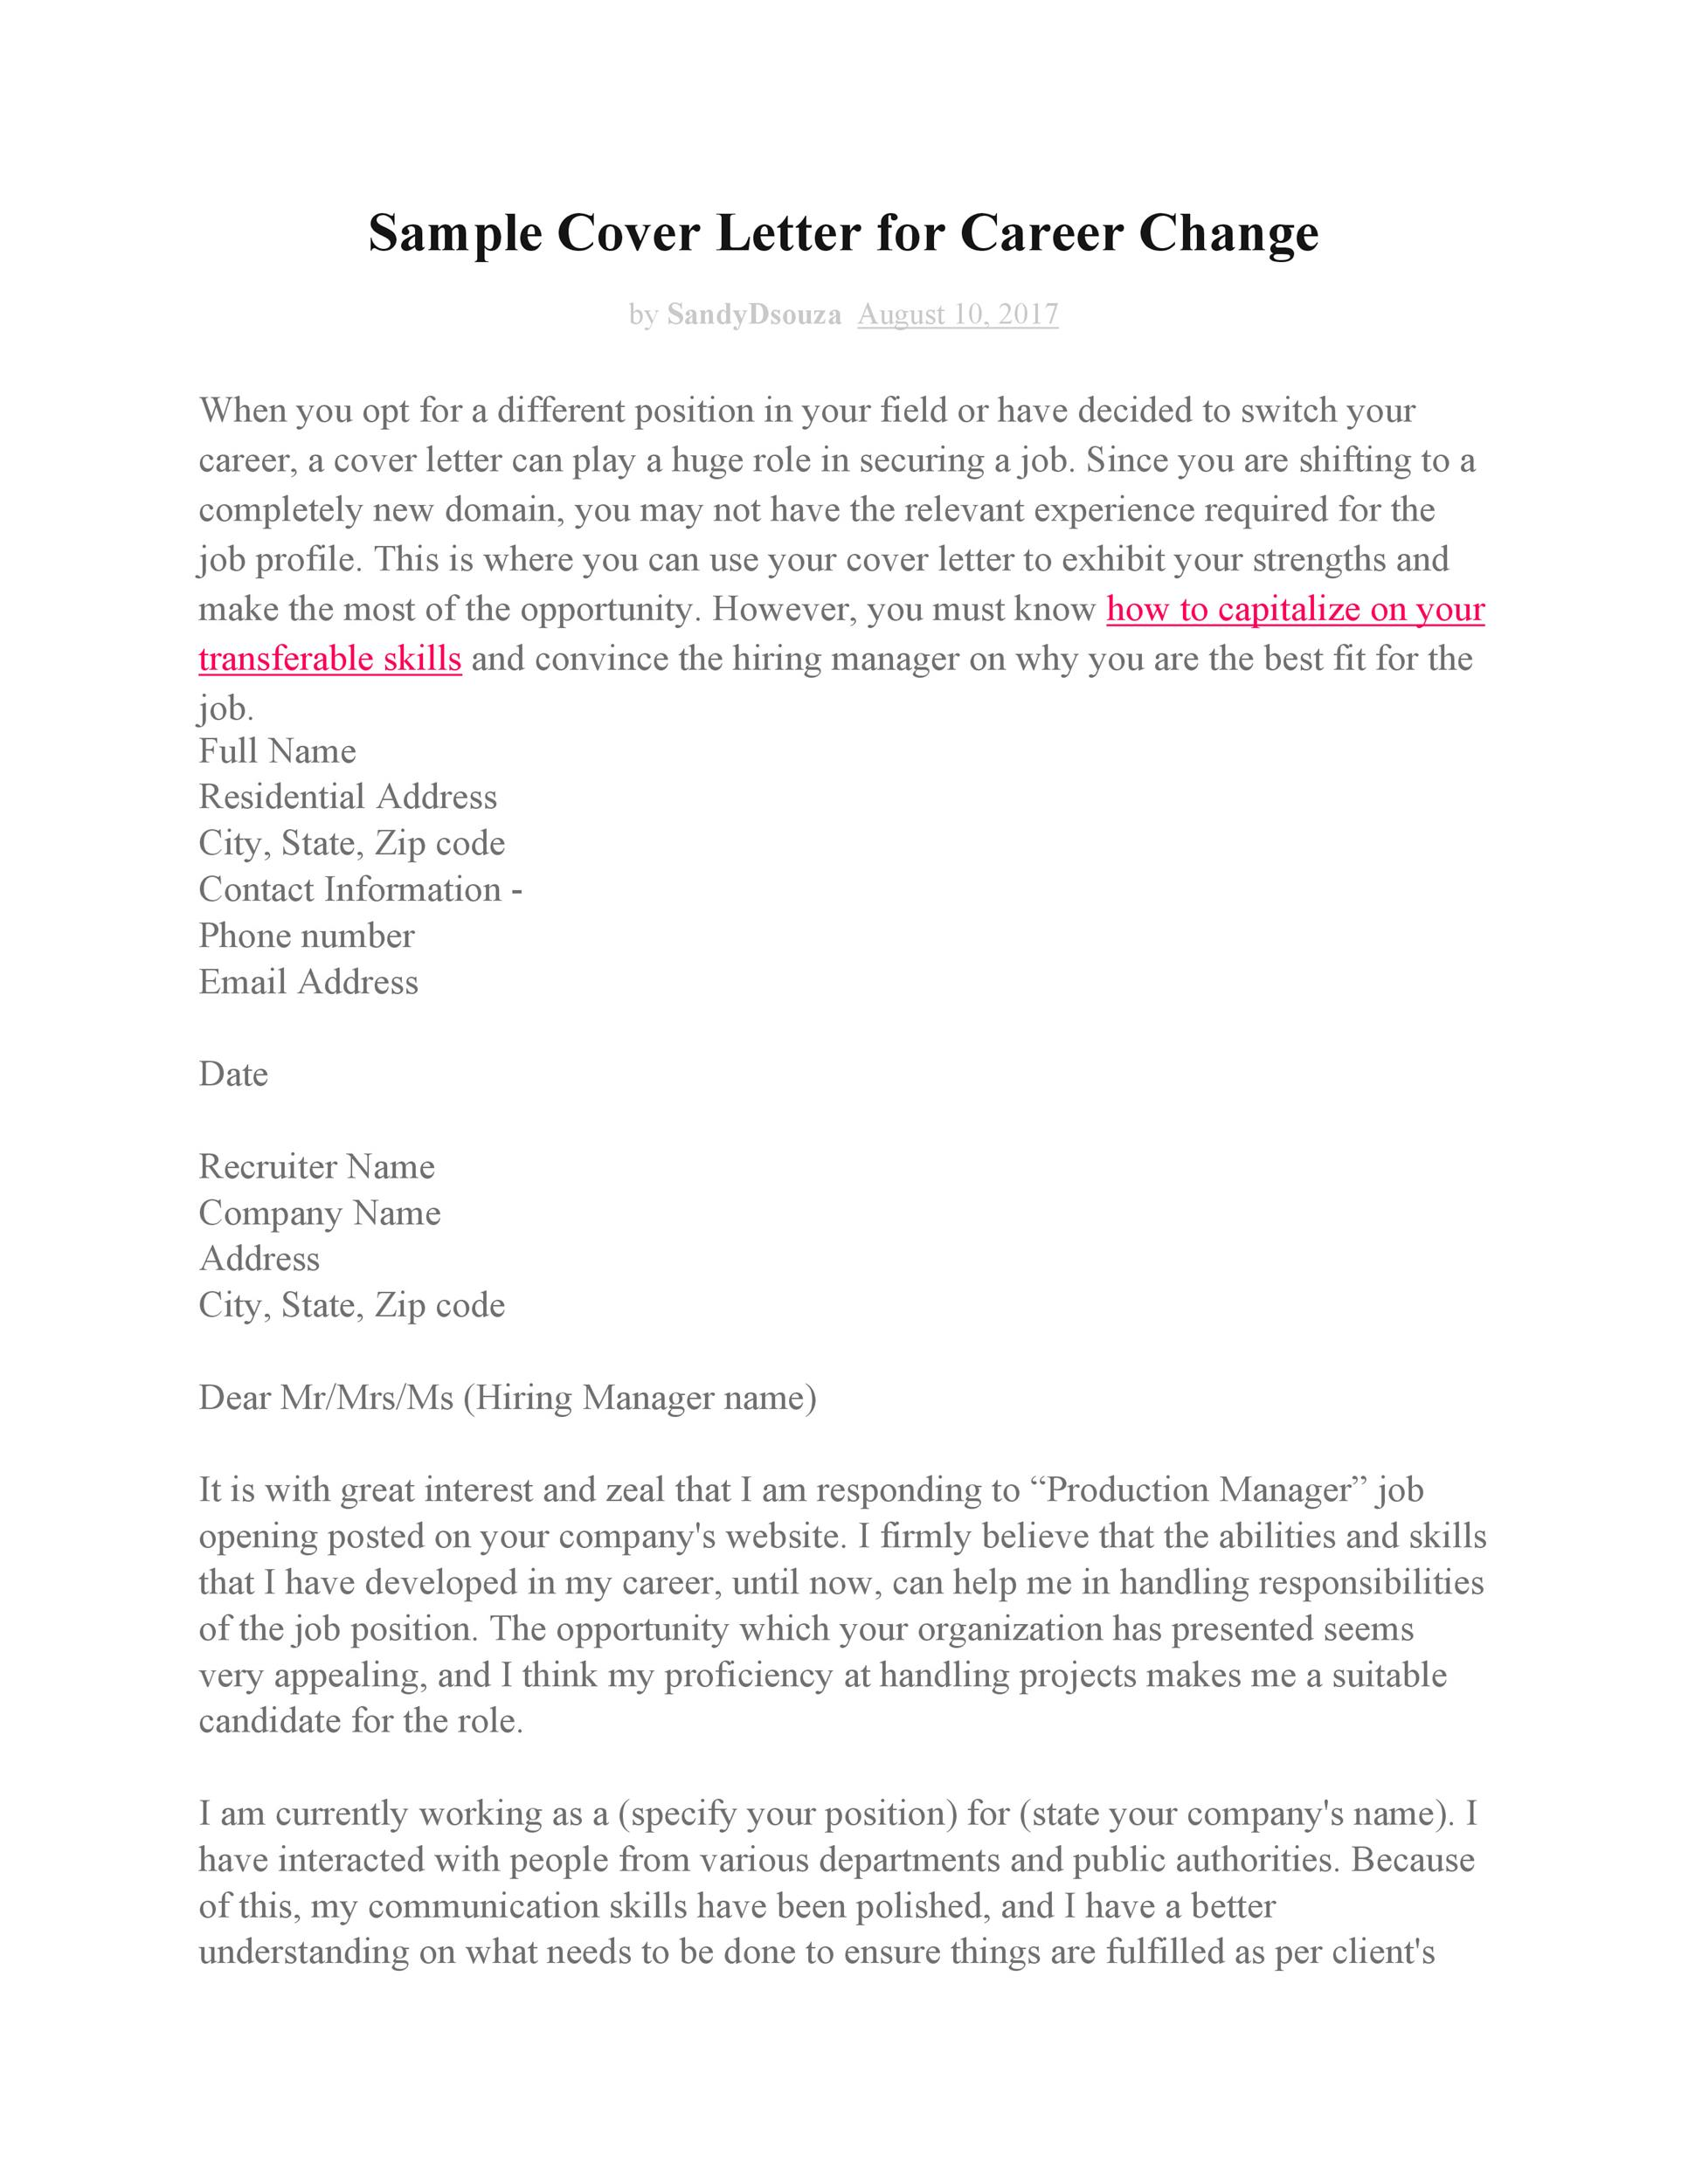 Free career change cover letter 13